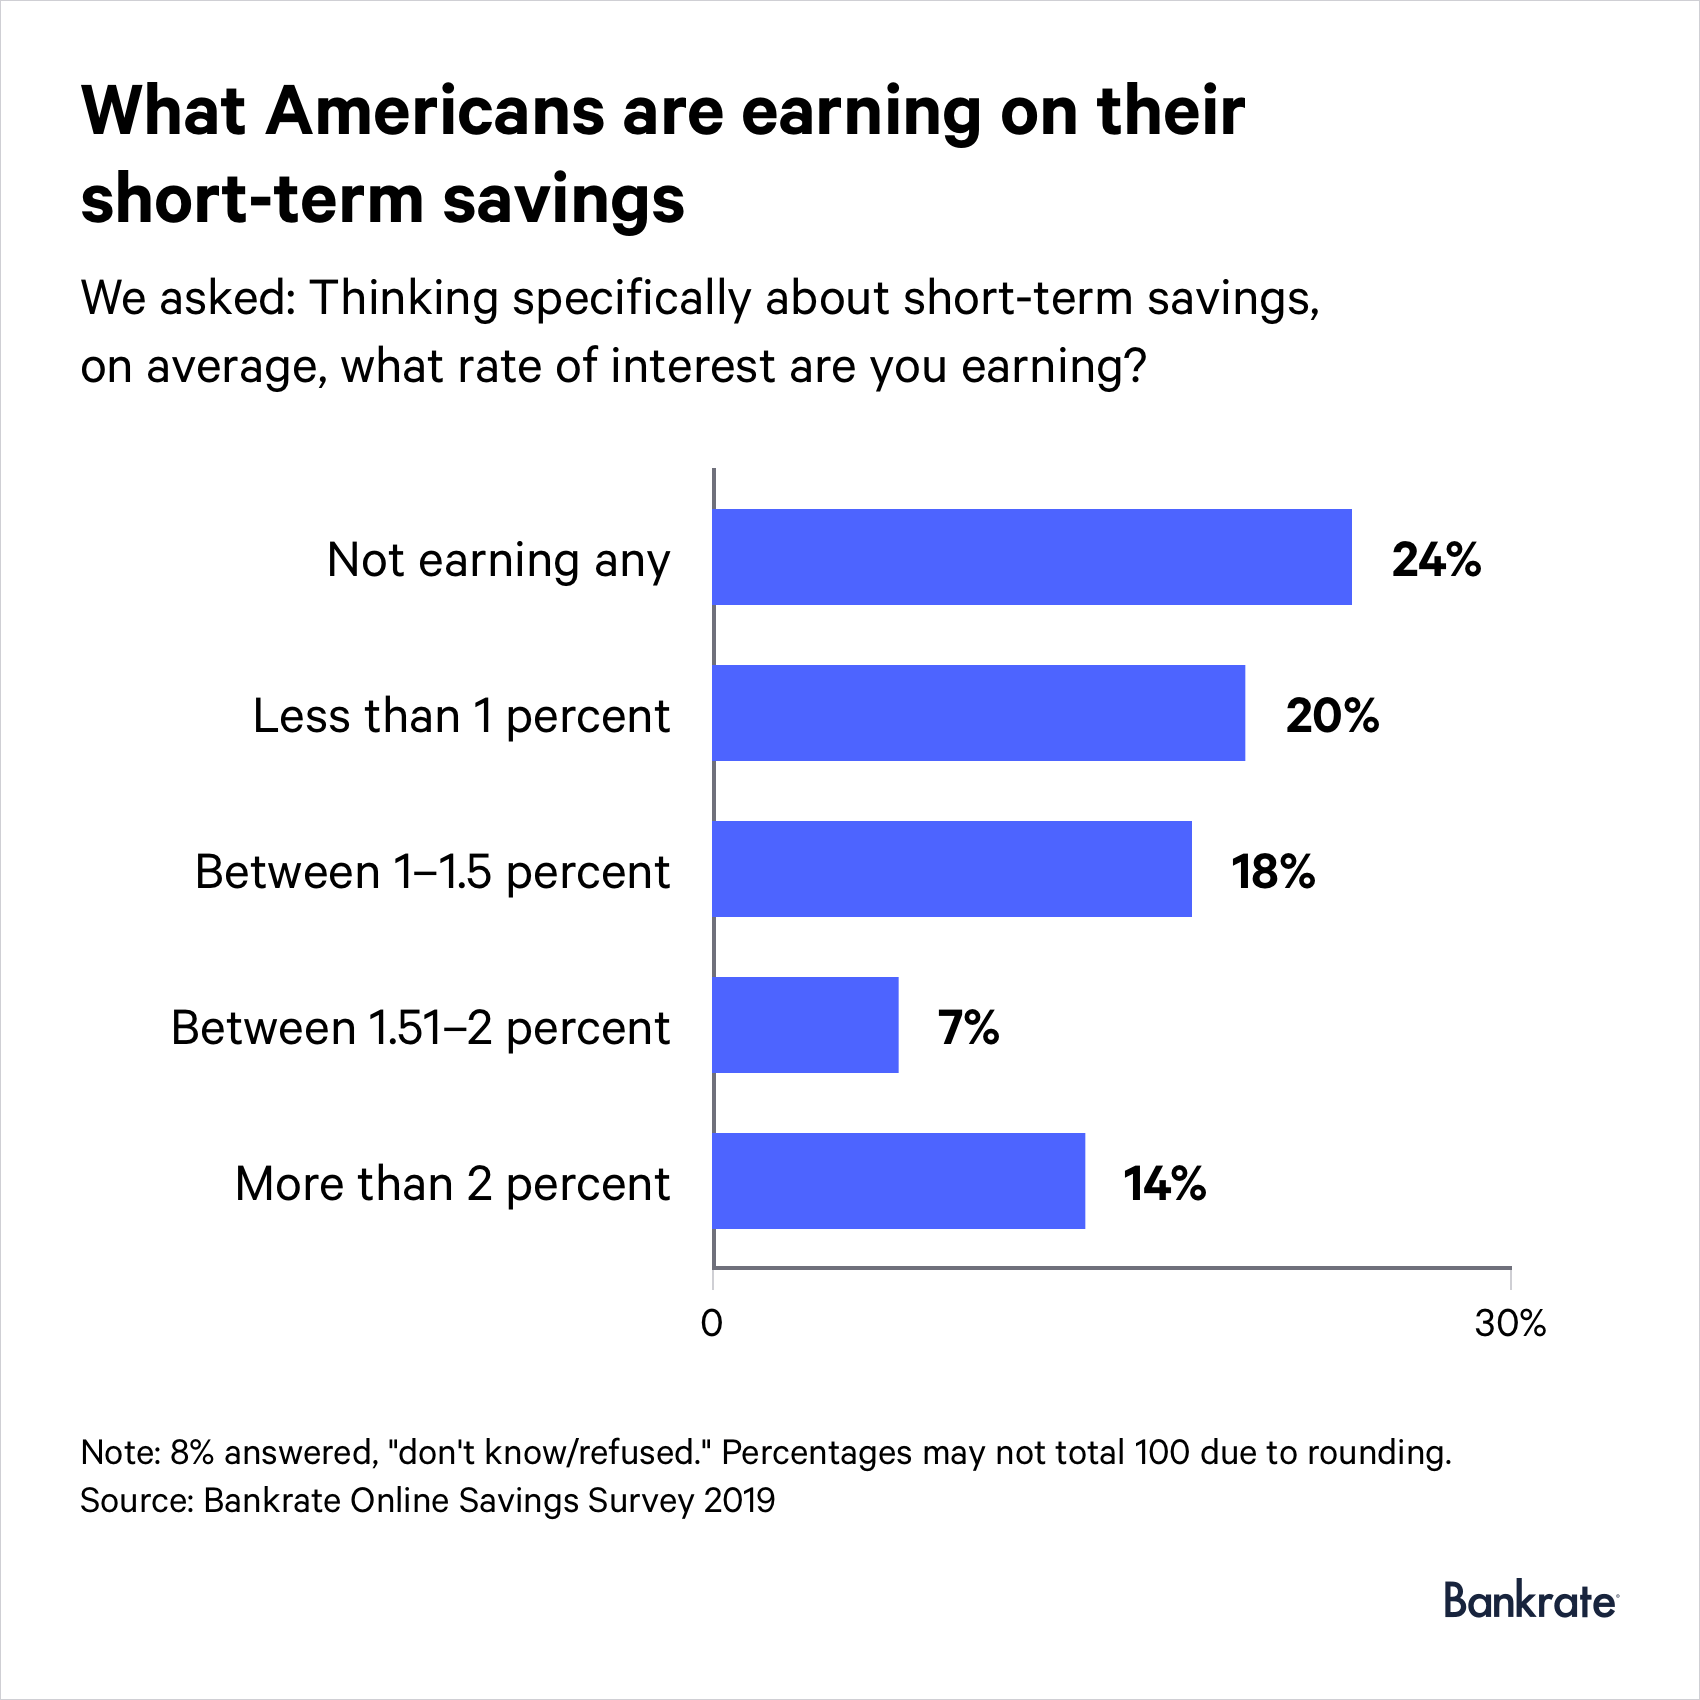 24% of respondents are not earning any interest